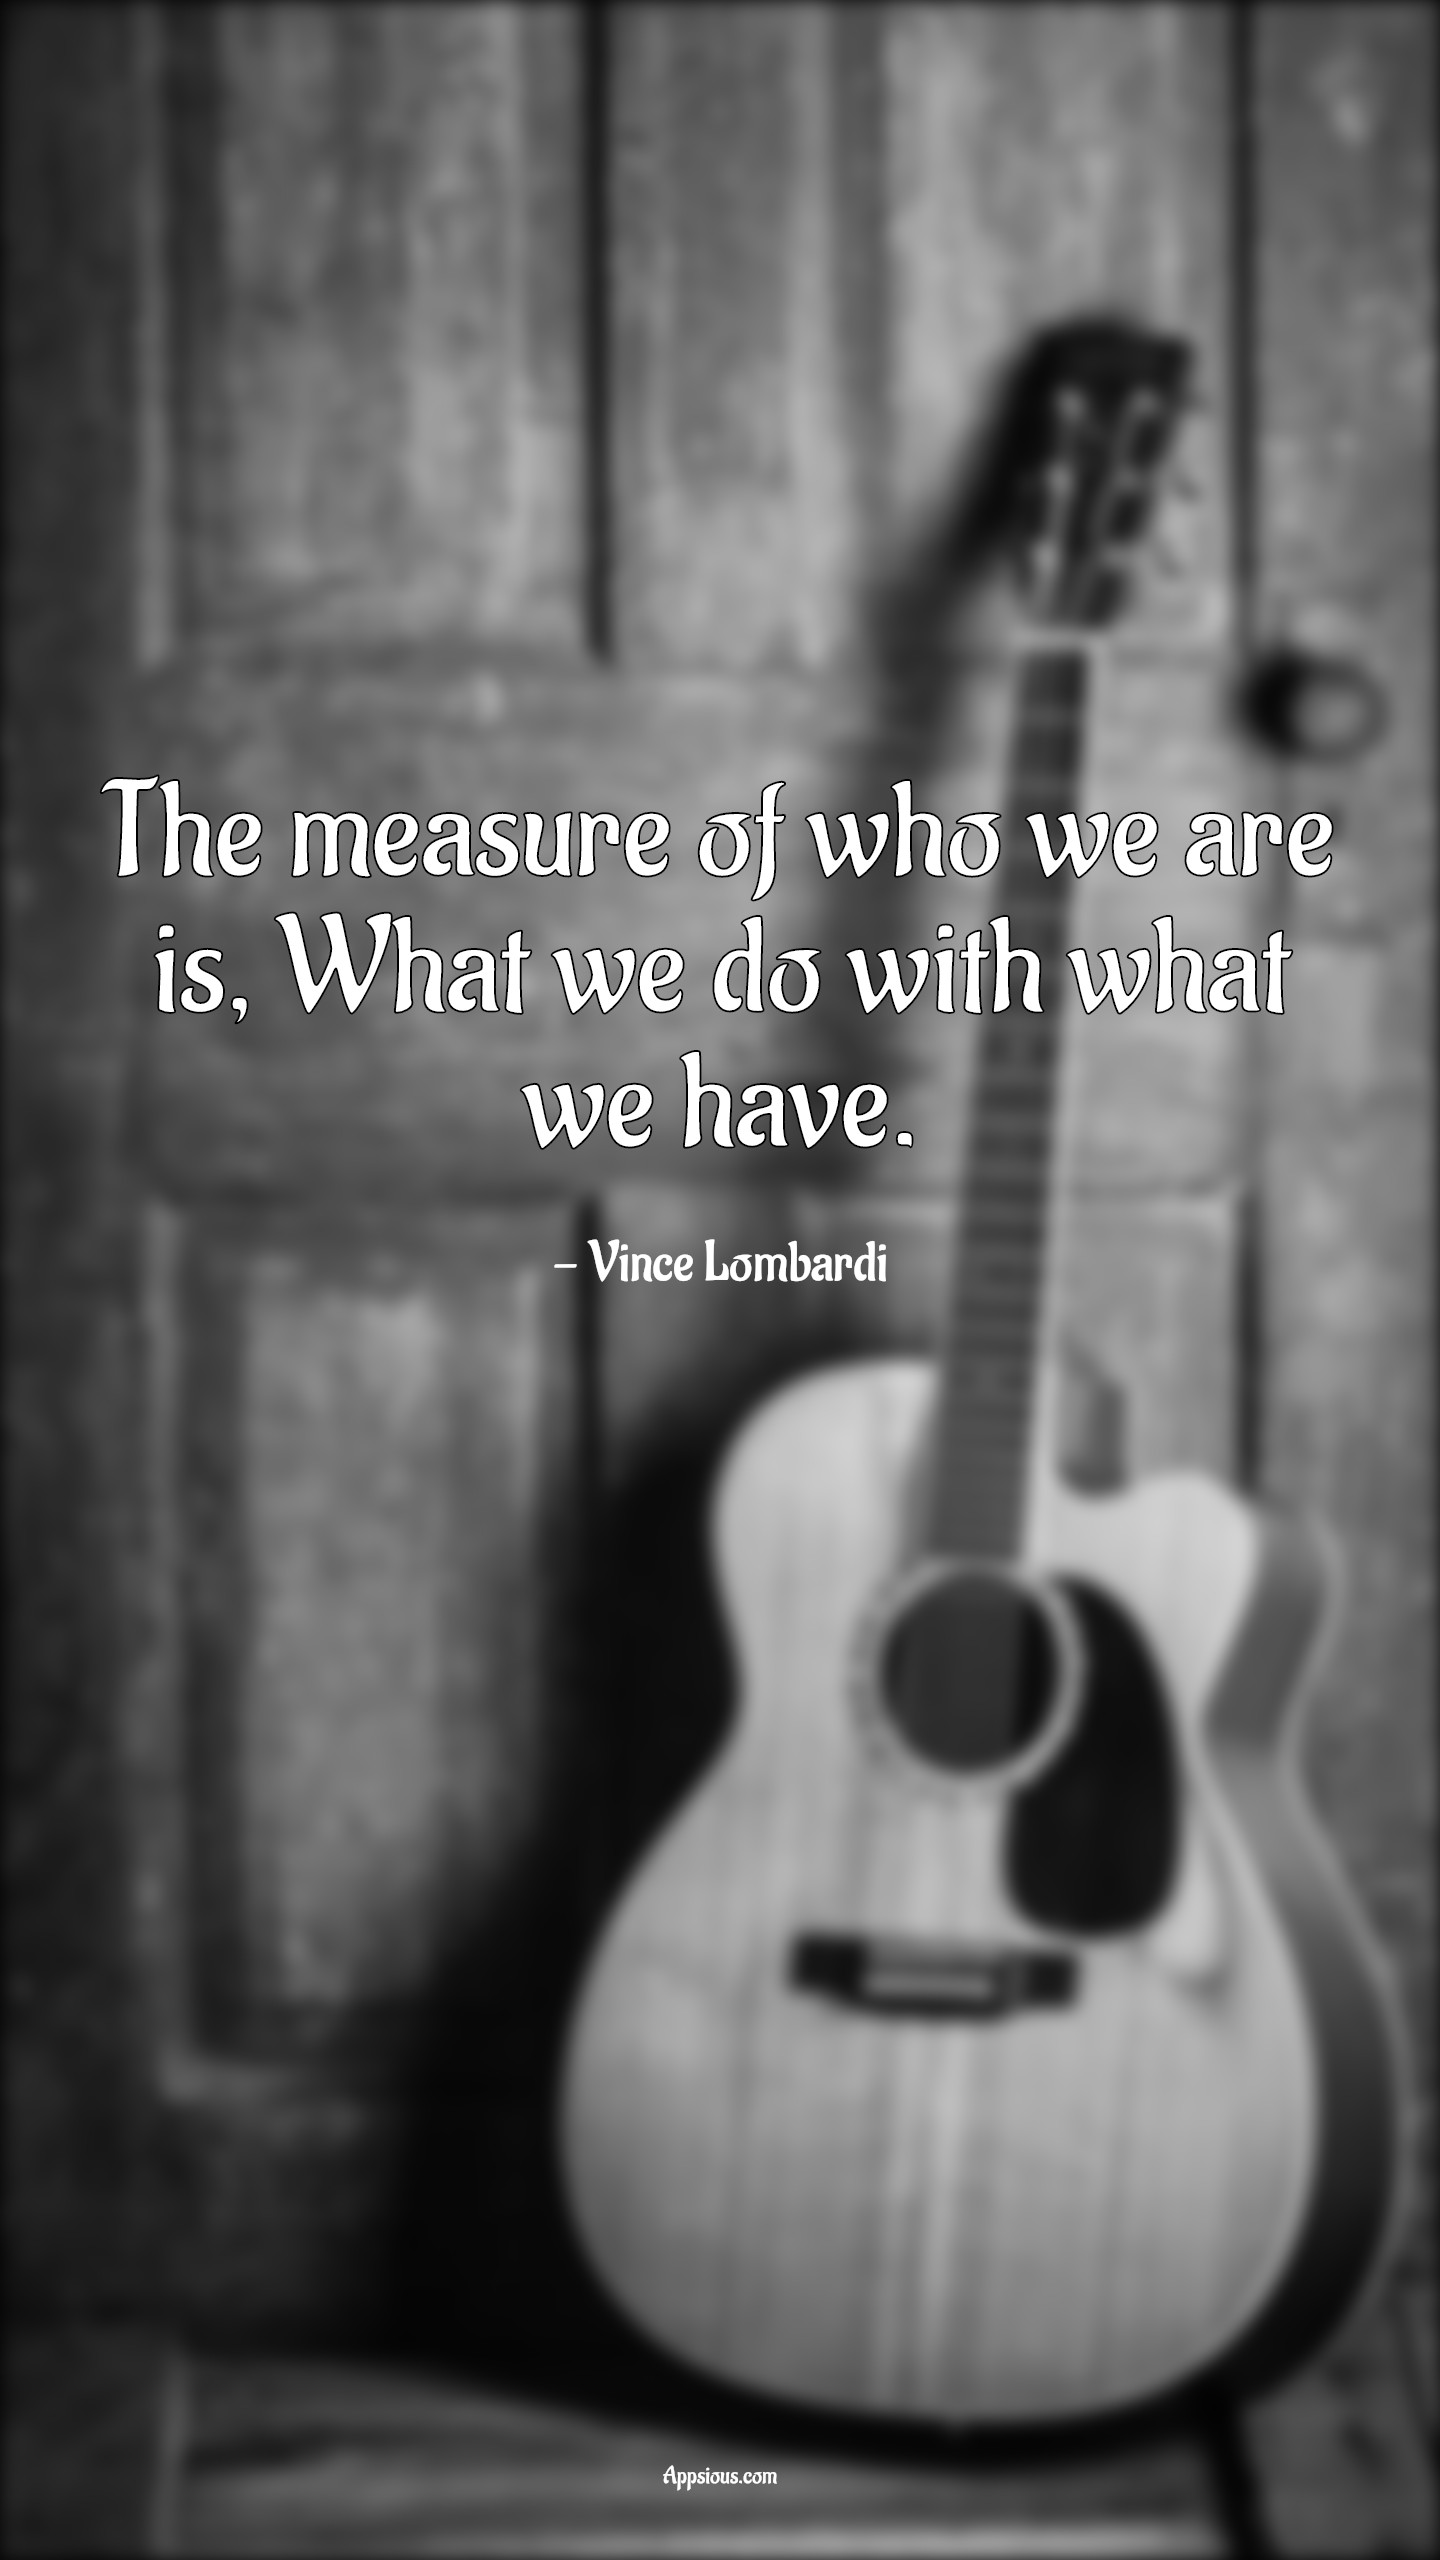 The measure of who we are is, What we do with what we have.